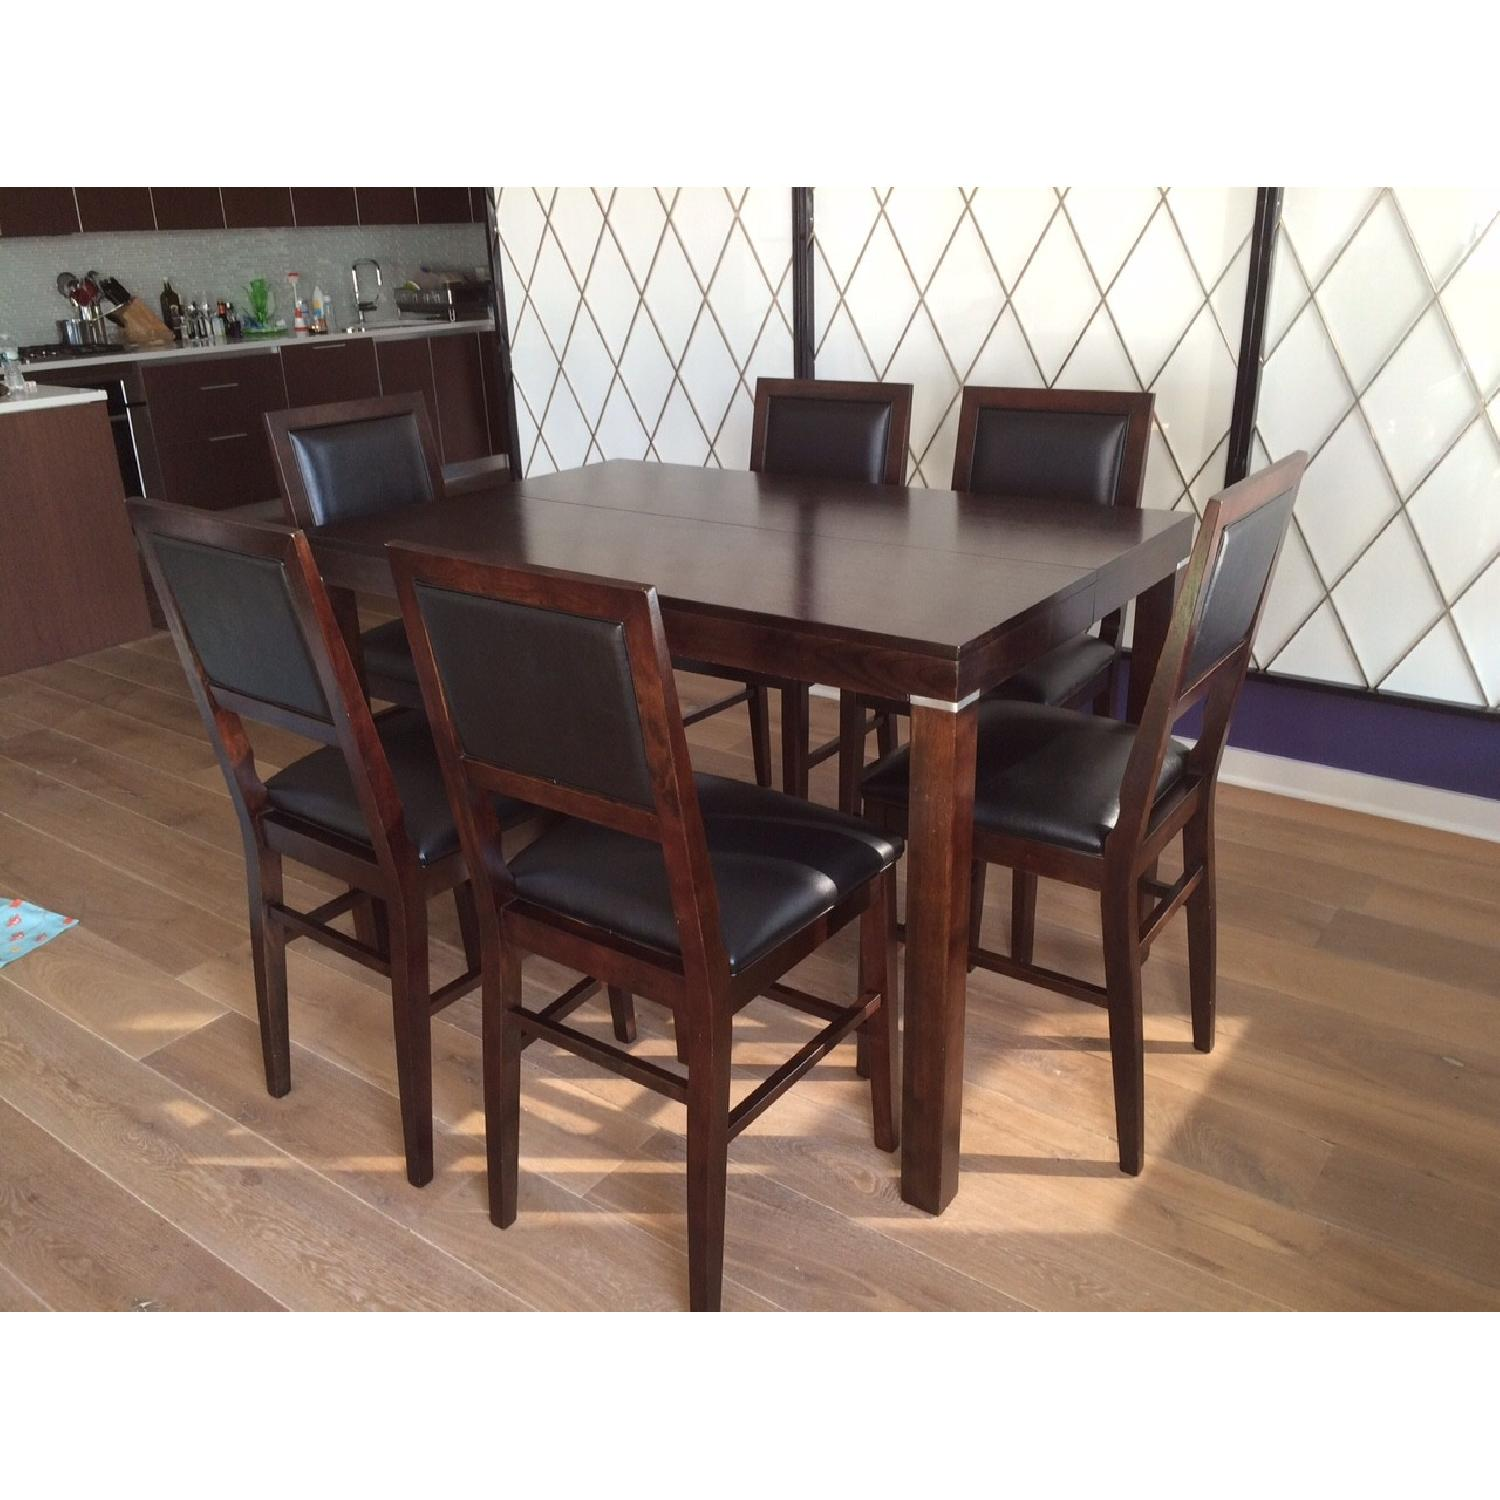 Fortunoff Dining Table w/ 8 Chairs - image-3